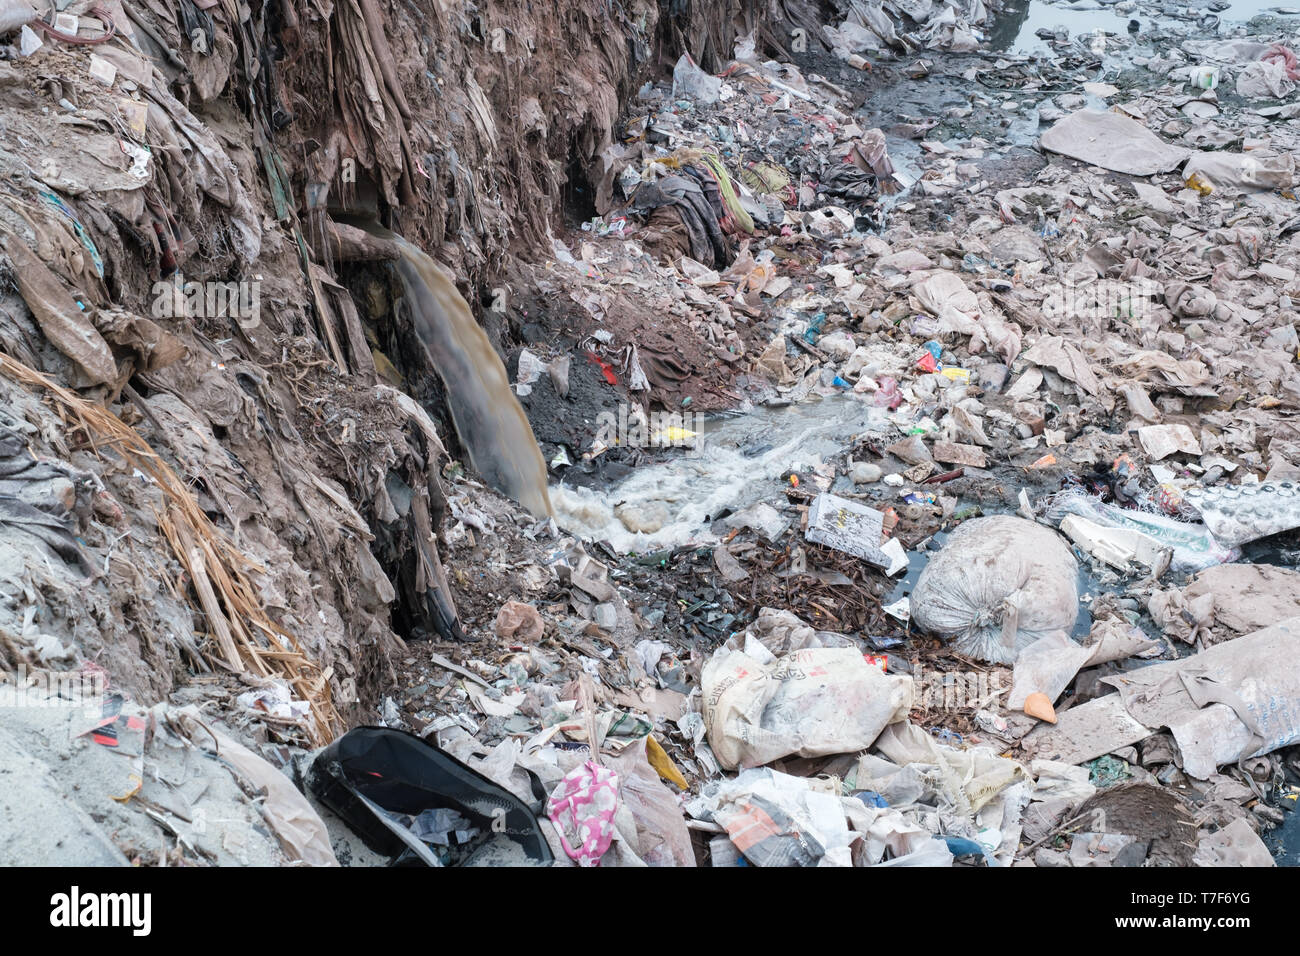 Water pollution and leather scraps in tanneries district, Dhaka, Bangladesh - Stock Image